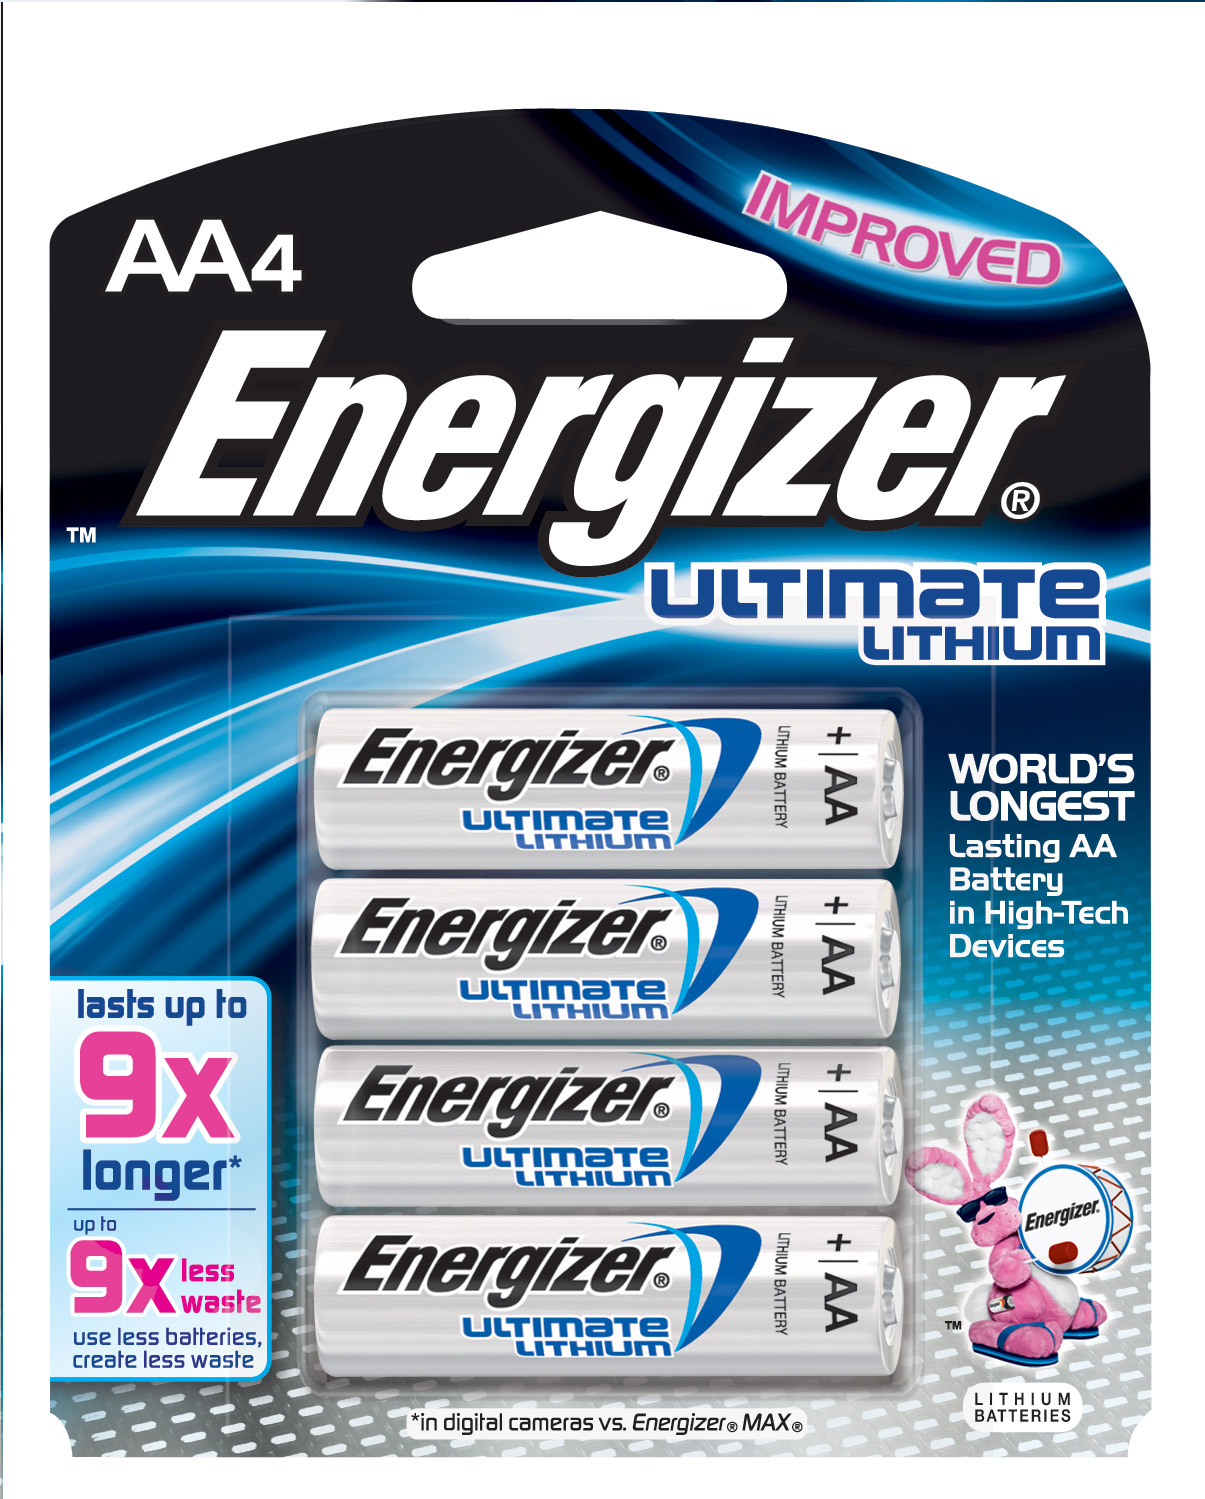 ENERGIZER Ultimate Lithium Batteries AA - Coupon rabais de 5$ sur les batteries Energizer Ultimate Lithium!